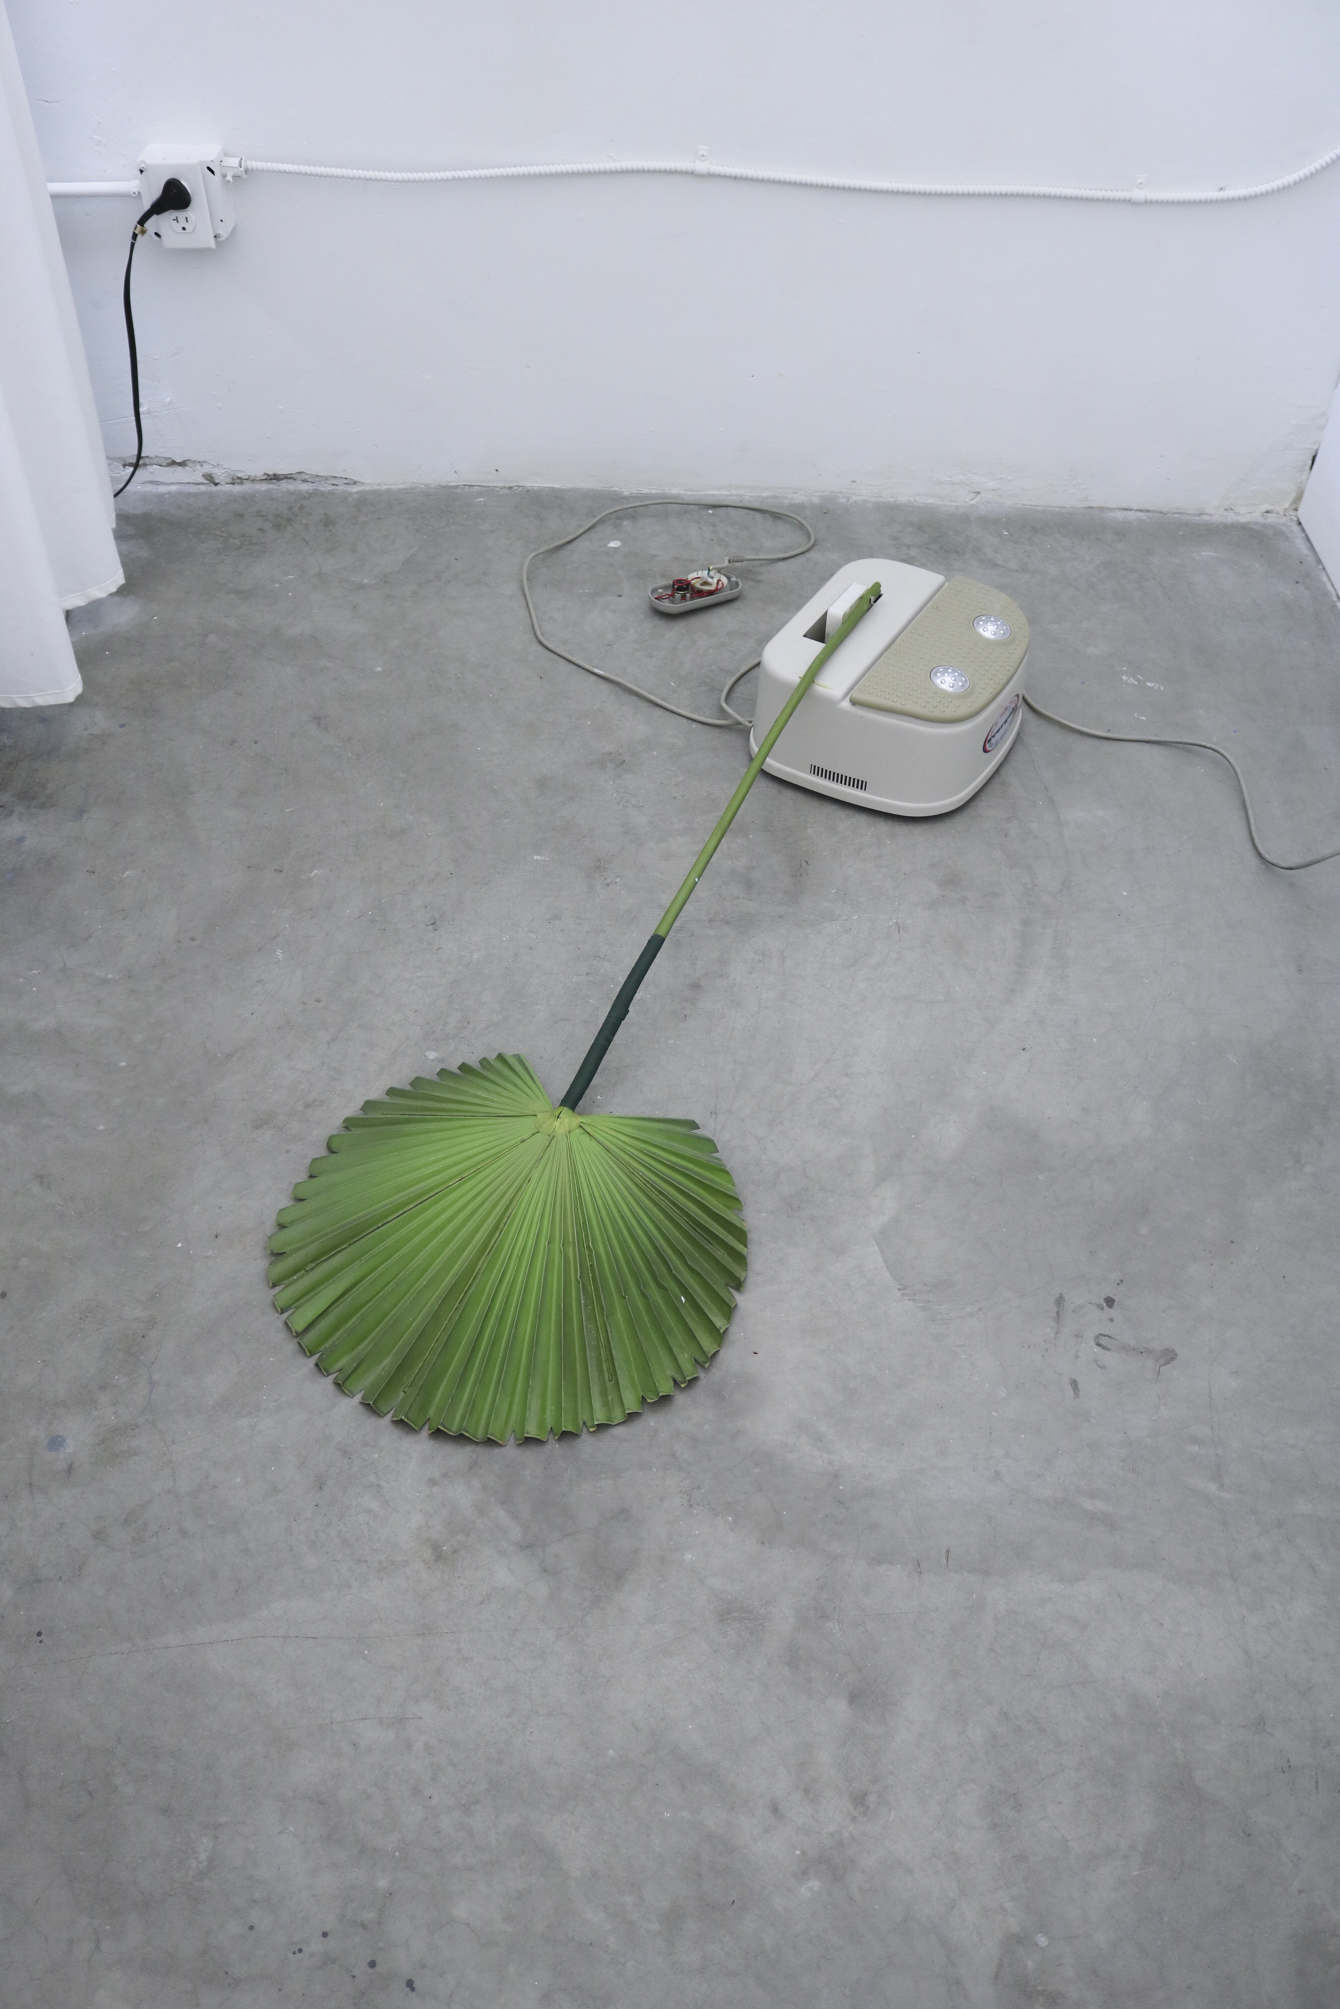 Rachel Youn, Devotee, 2019. Chi swing, artificial fan palm, and motion sensor. Photo courtesy of the artist.